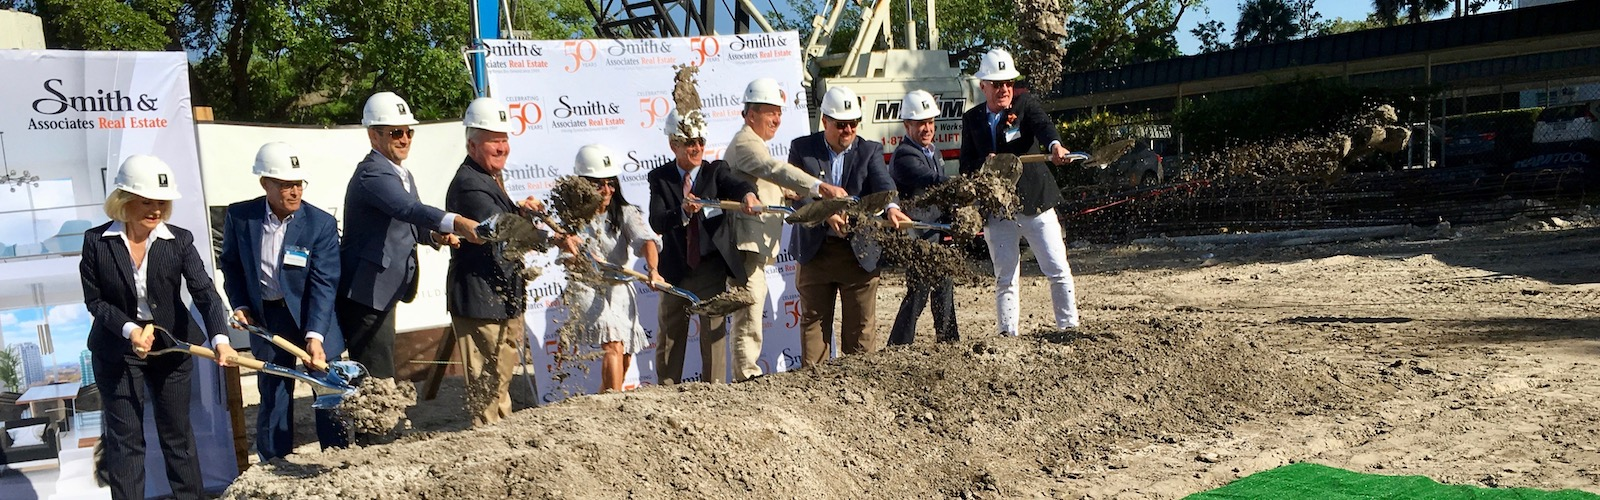 Groundbreaking at The Sanctuary at Alexandra Place condos on Bayshore Boulevard in Tampa. <span class=&apos;image-credits&apos;>Diane Egner</span>